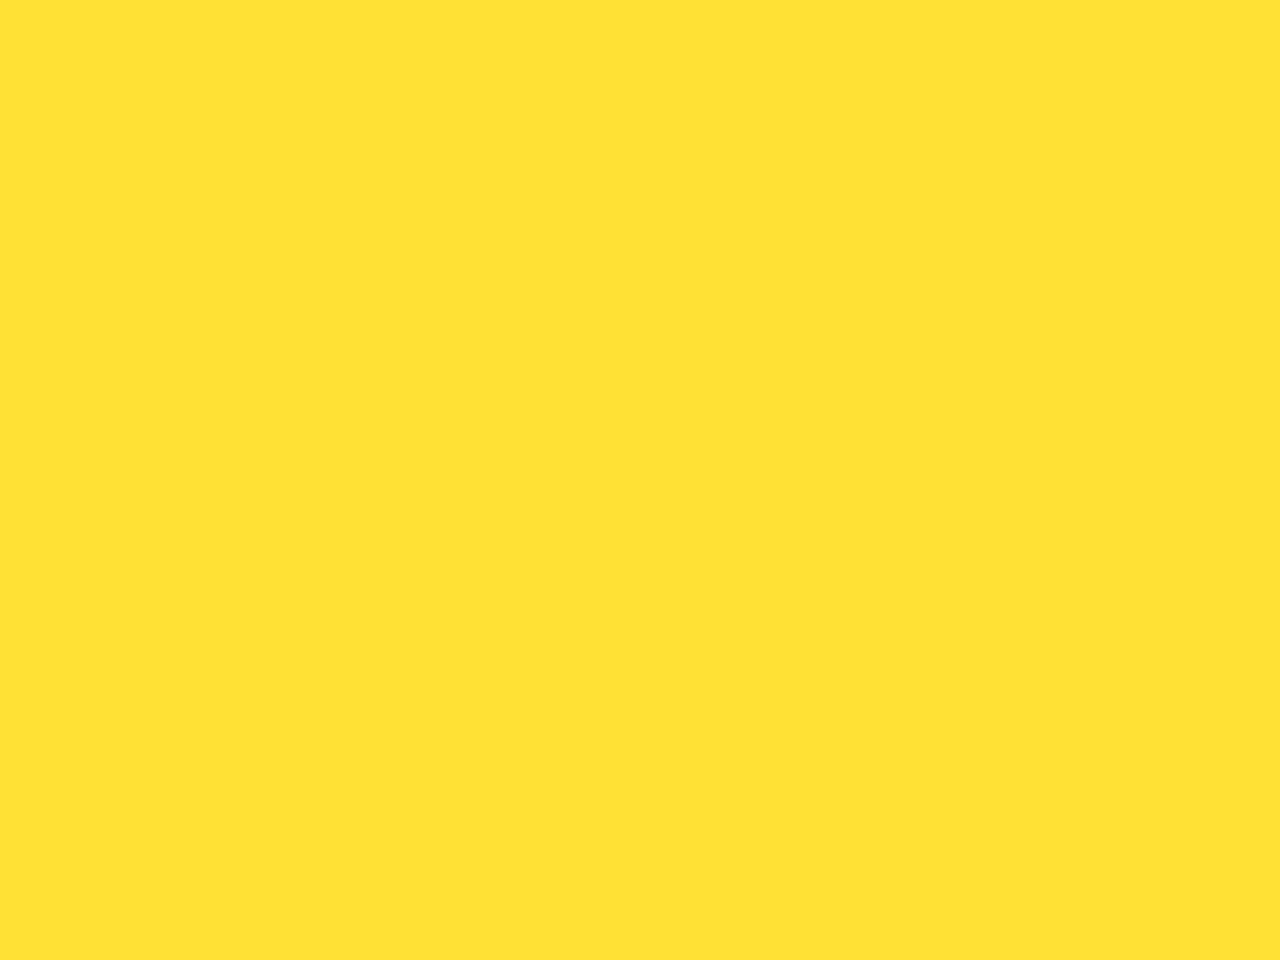 1280x960 Banana Yellow Solid Color Background